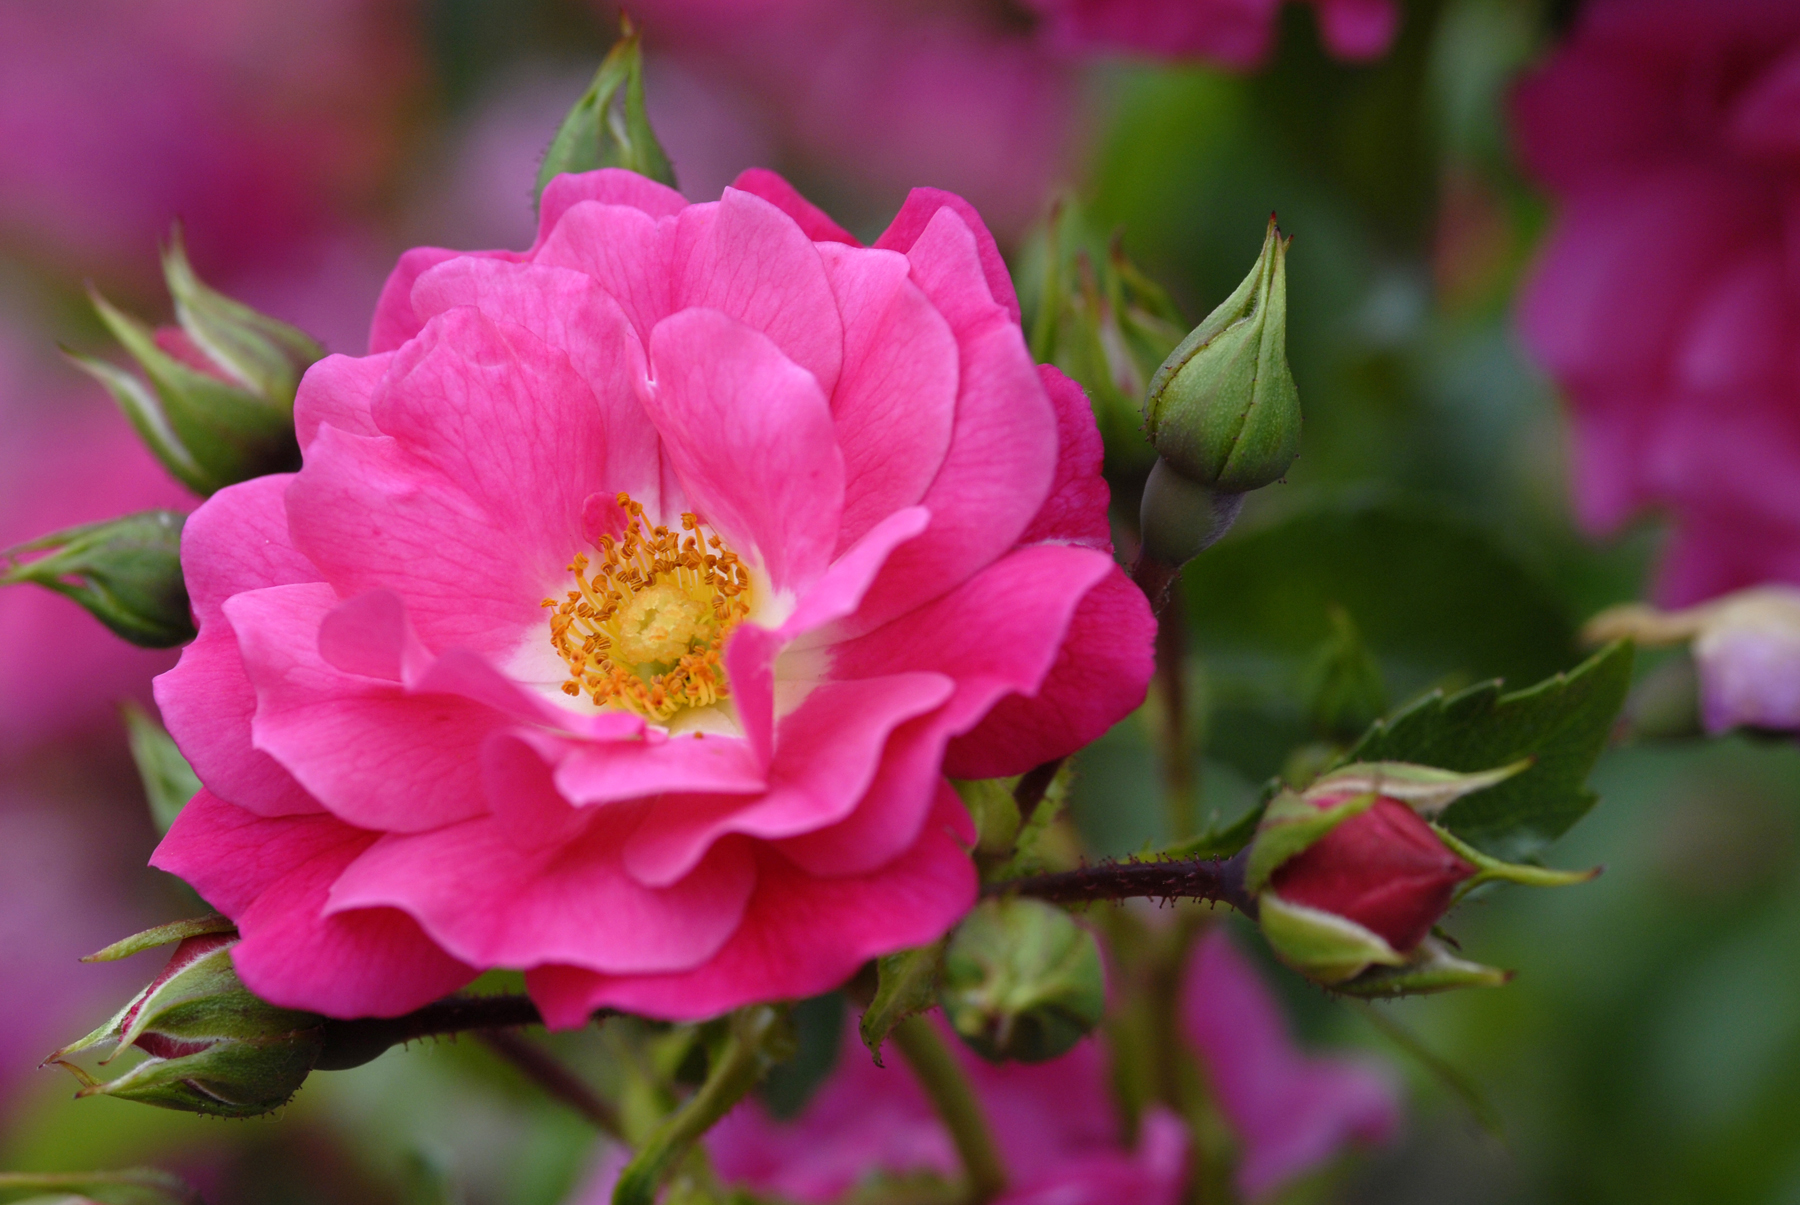 What to get a garden lover for valentines day flower carpet pink supreme is a stunning easy care addition to any garden dhlflorist Image collections